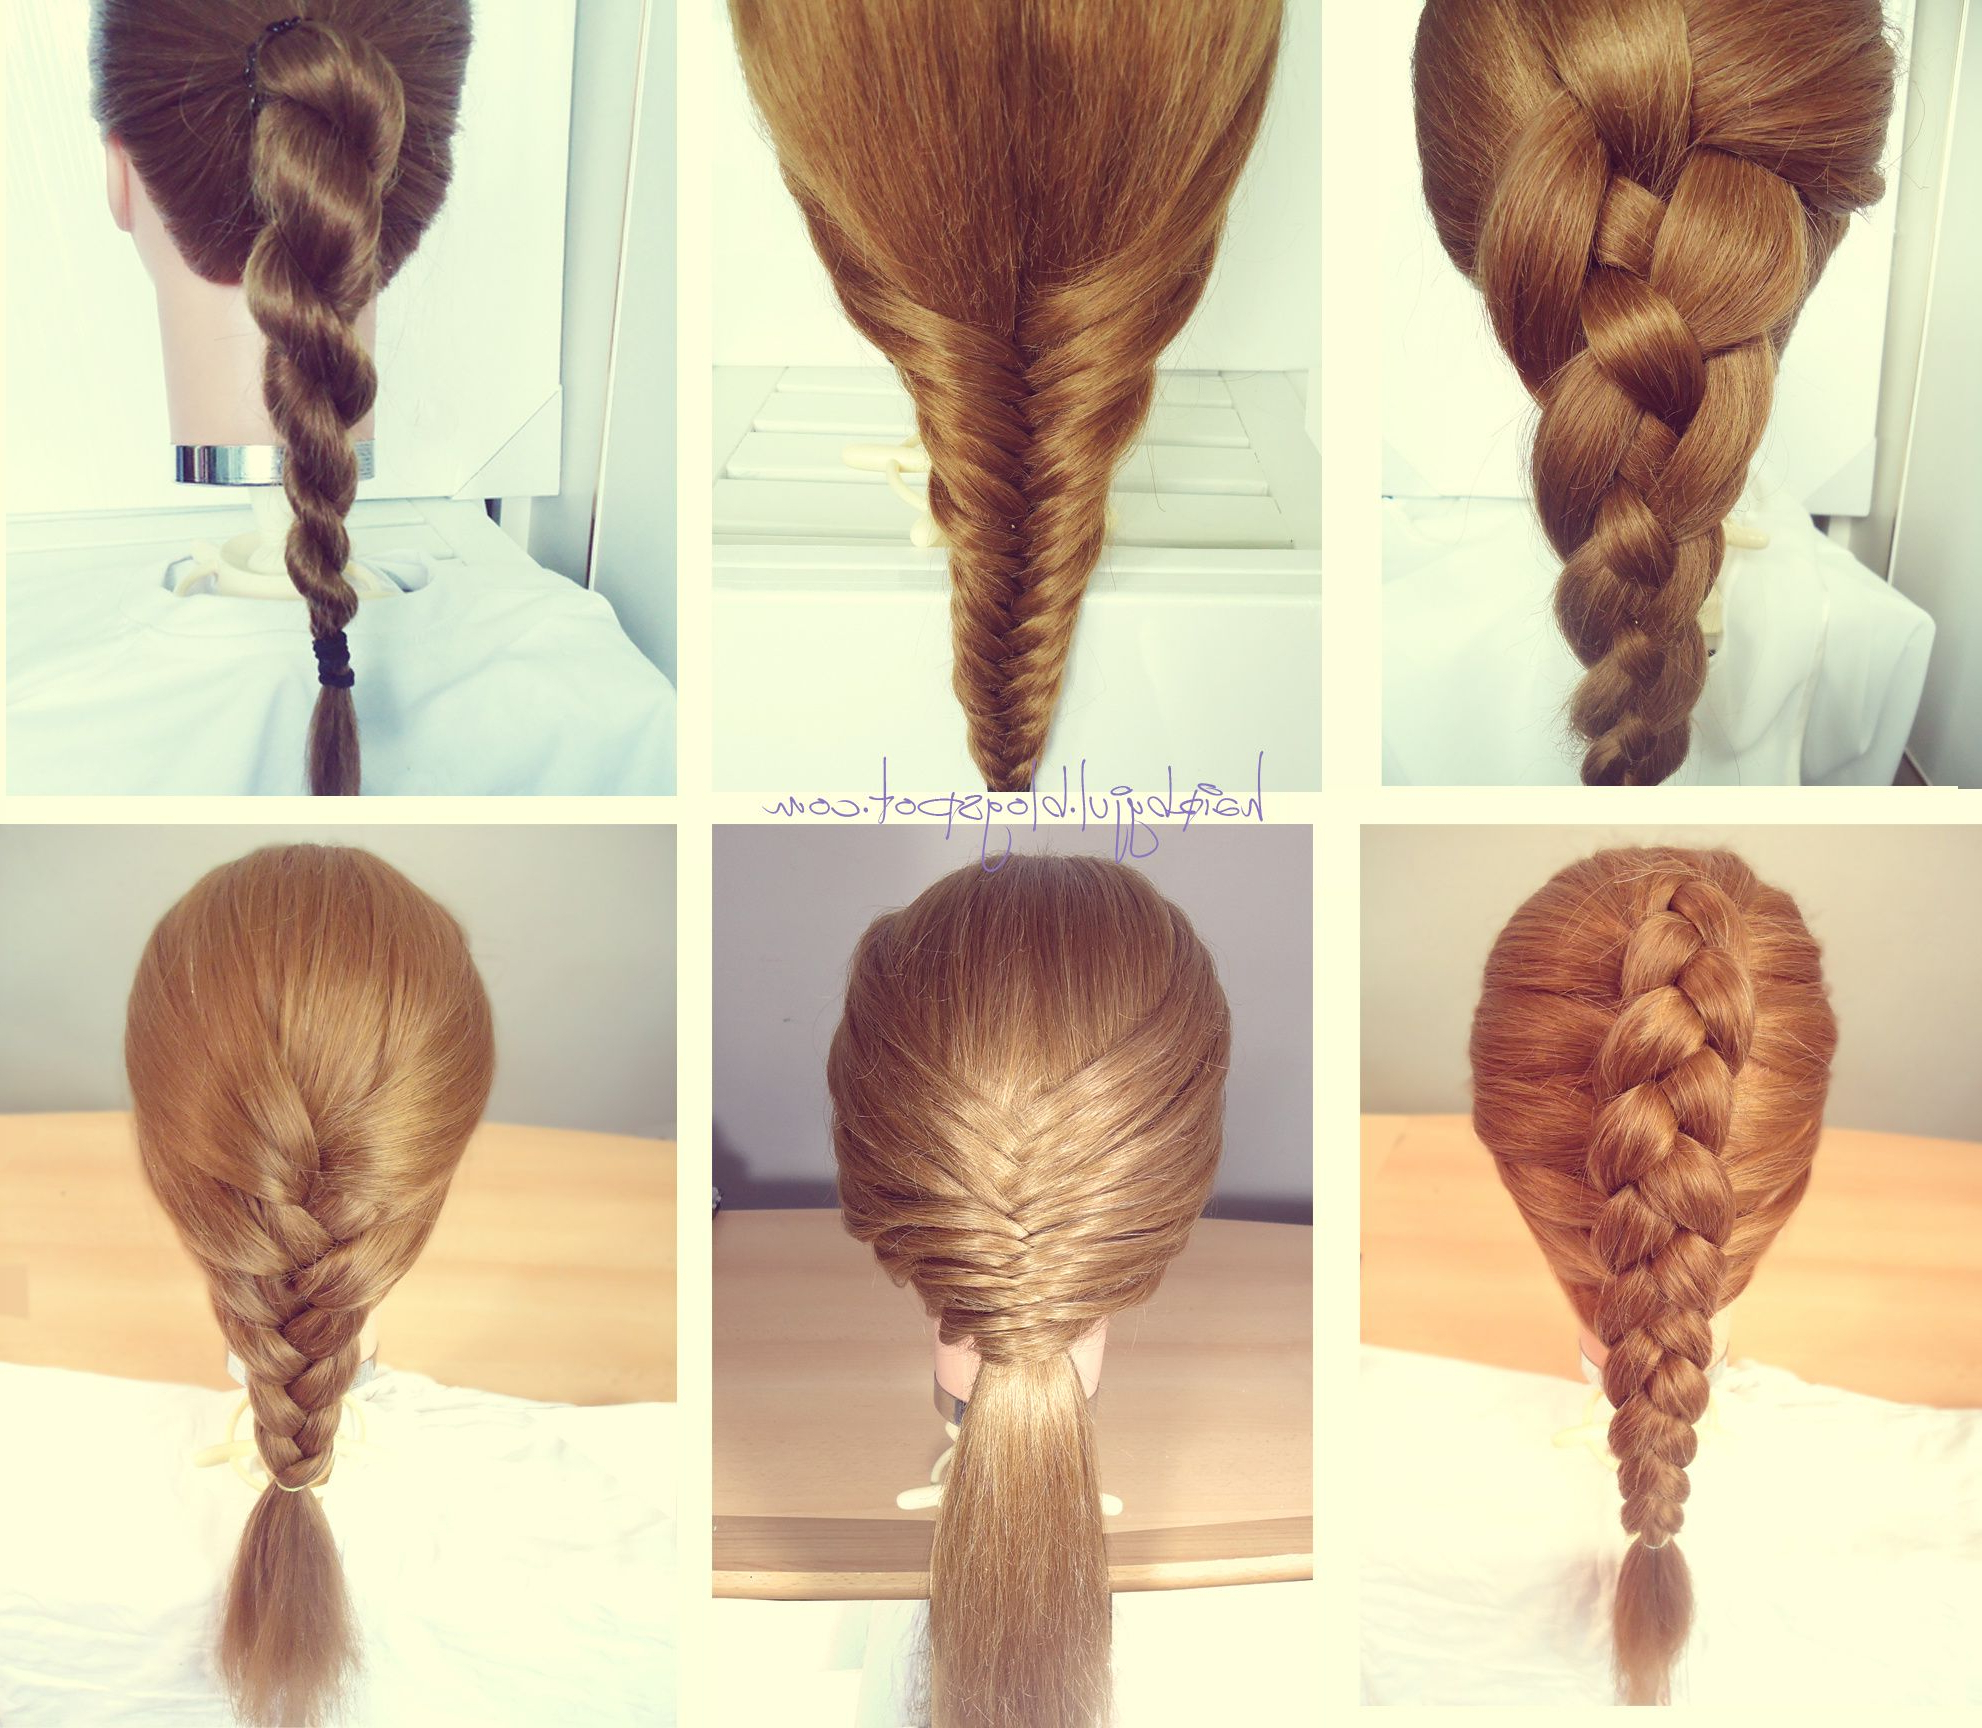 Newest Rope And Fishtail Braid Hairstyles Throughout Braid Hairstyles, Dutch Braid, French Braid, Rope Braid (View 4 of 20)